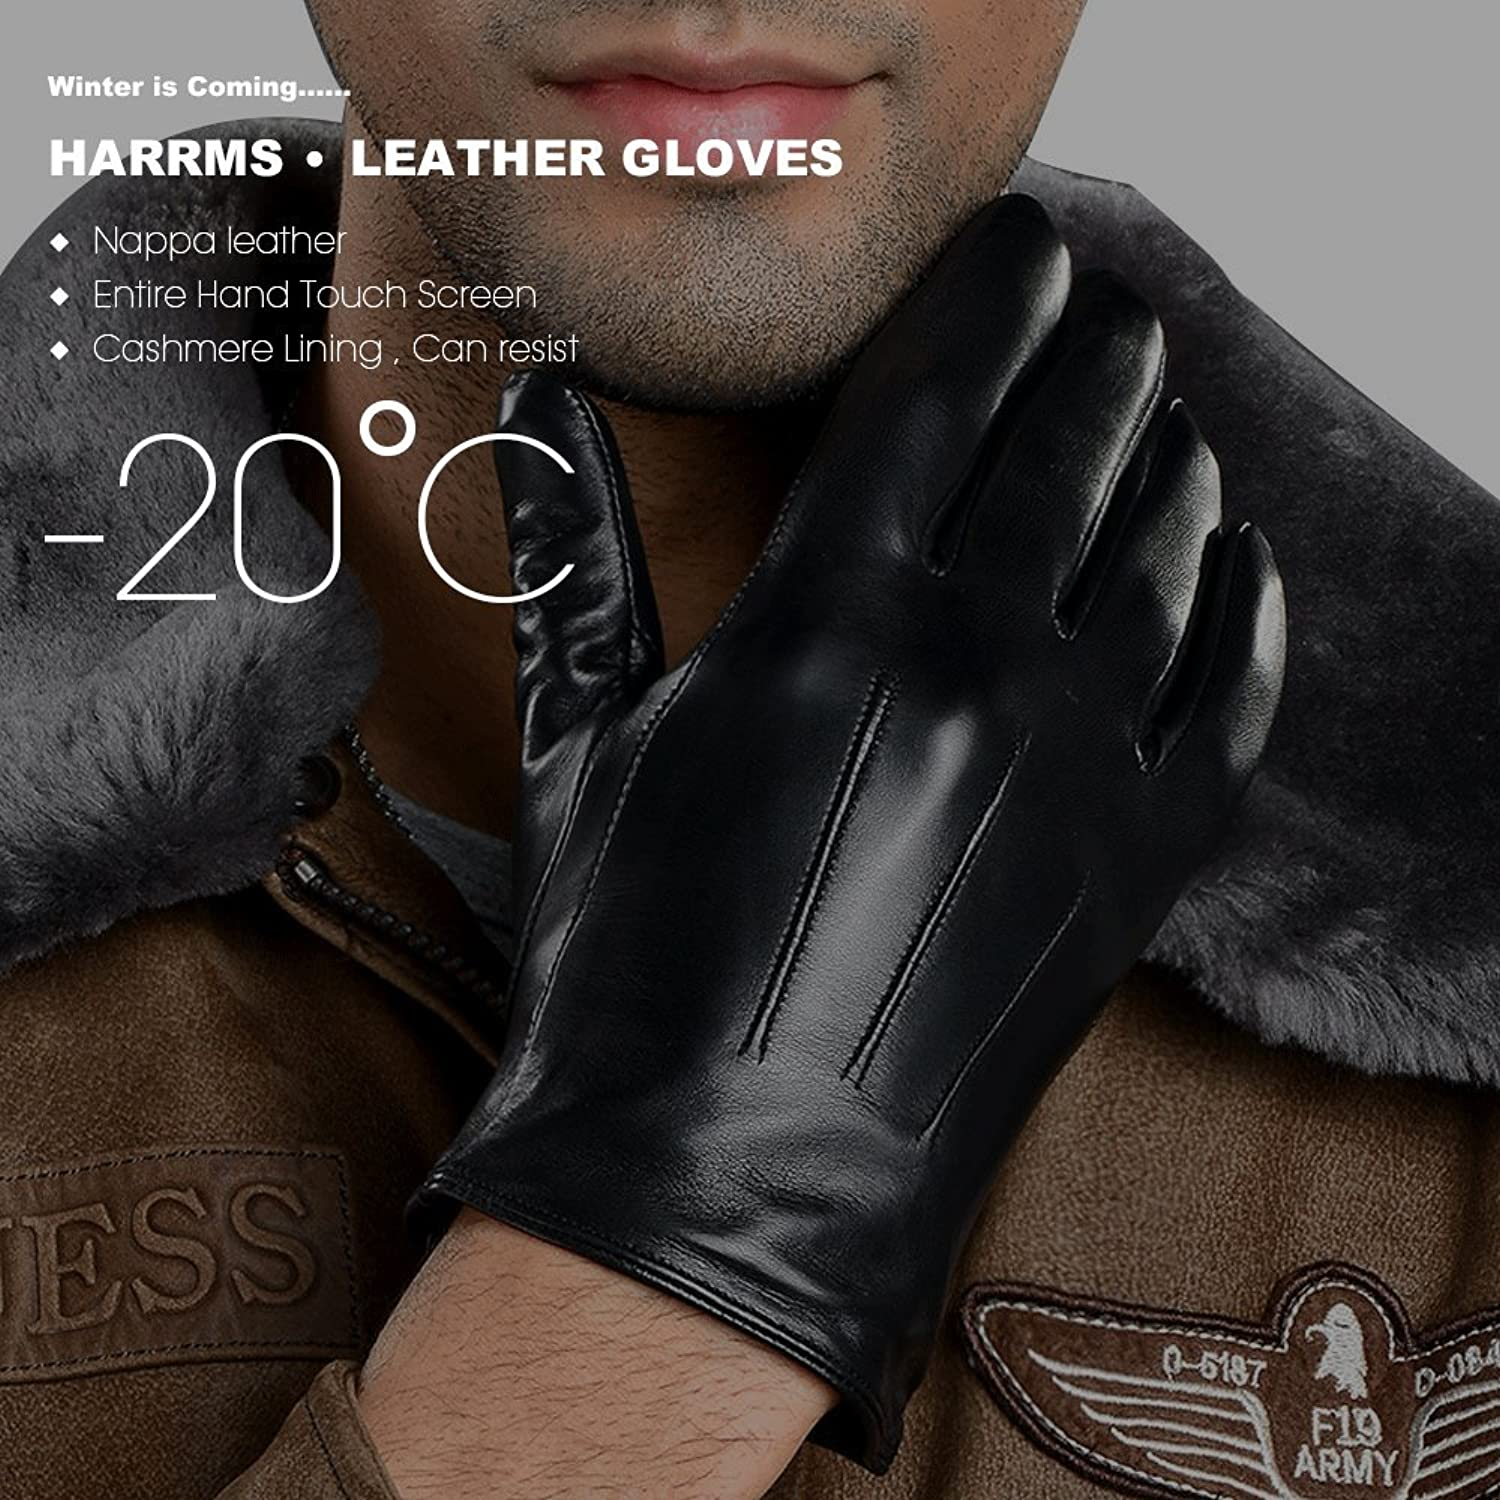 Mens leather gloves size 2x - 71yl0smhxdl _ul1500_ Jpg